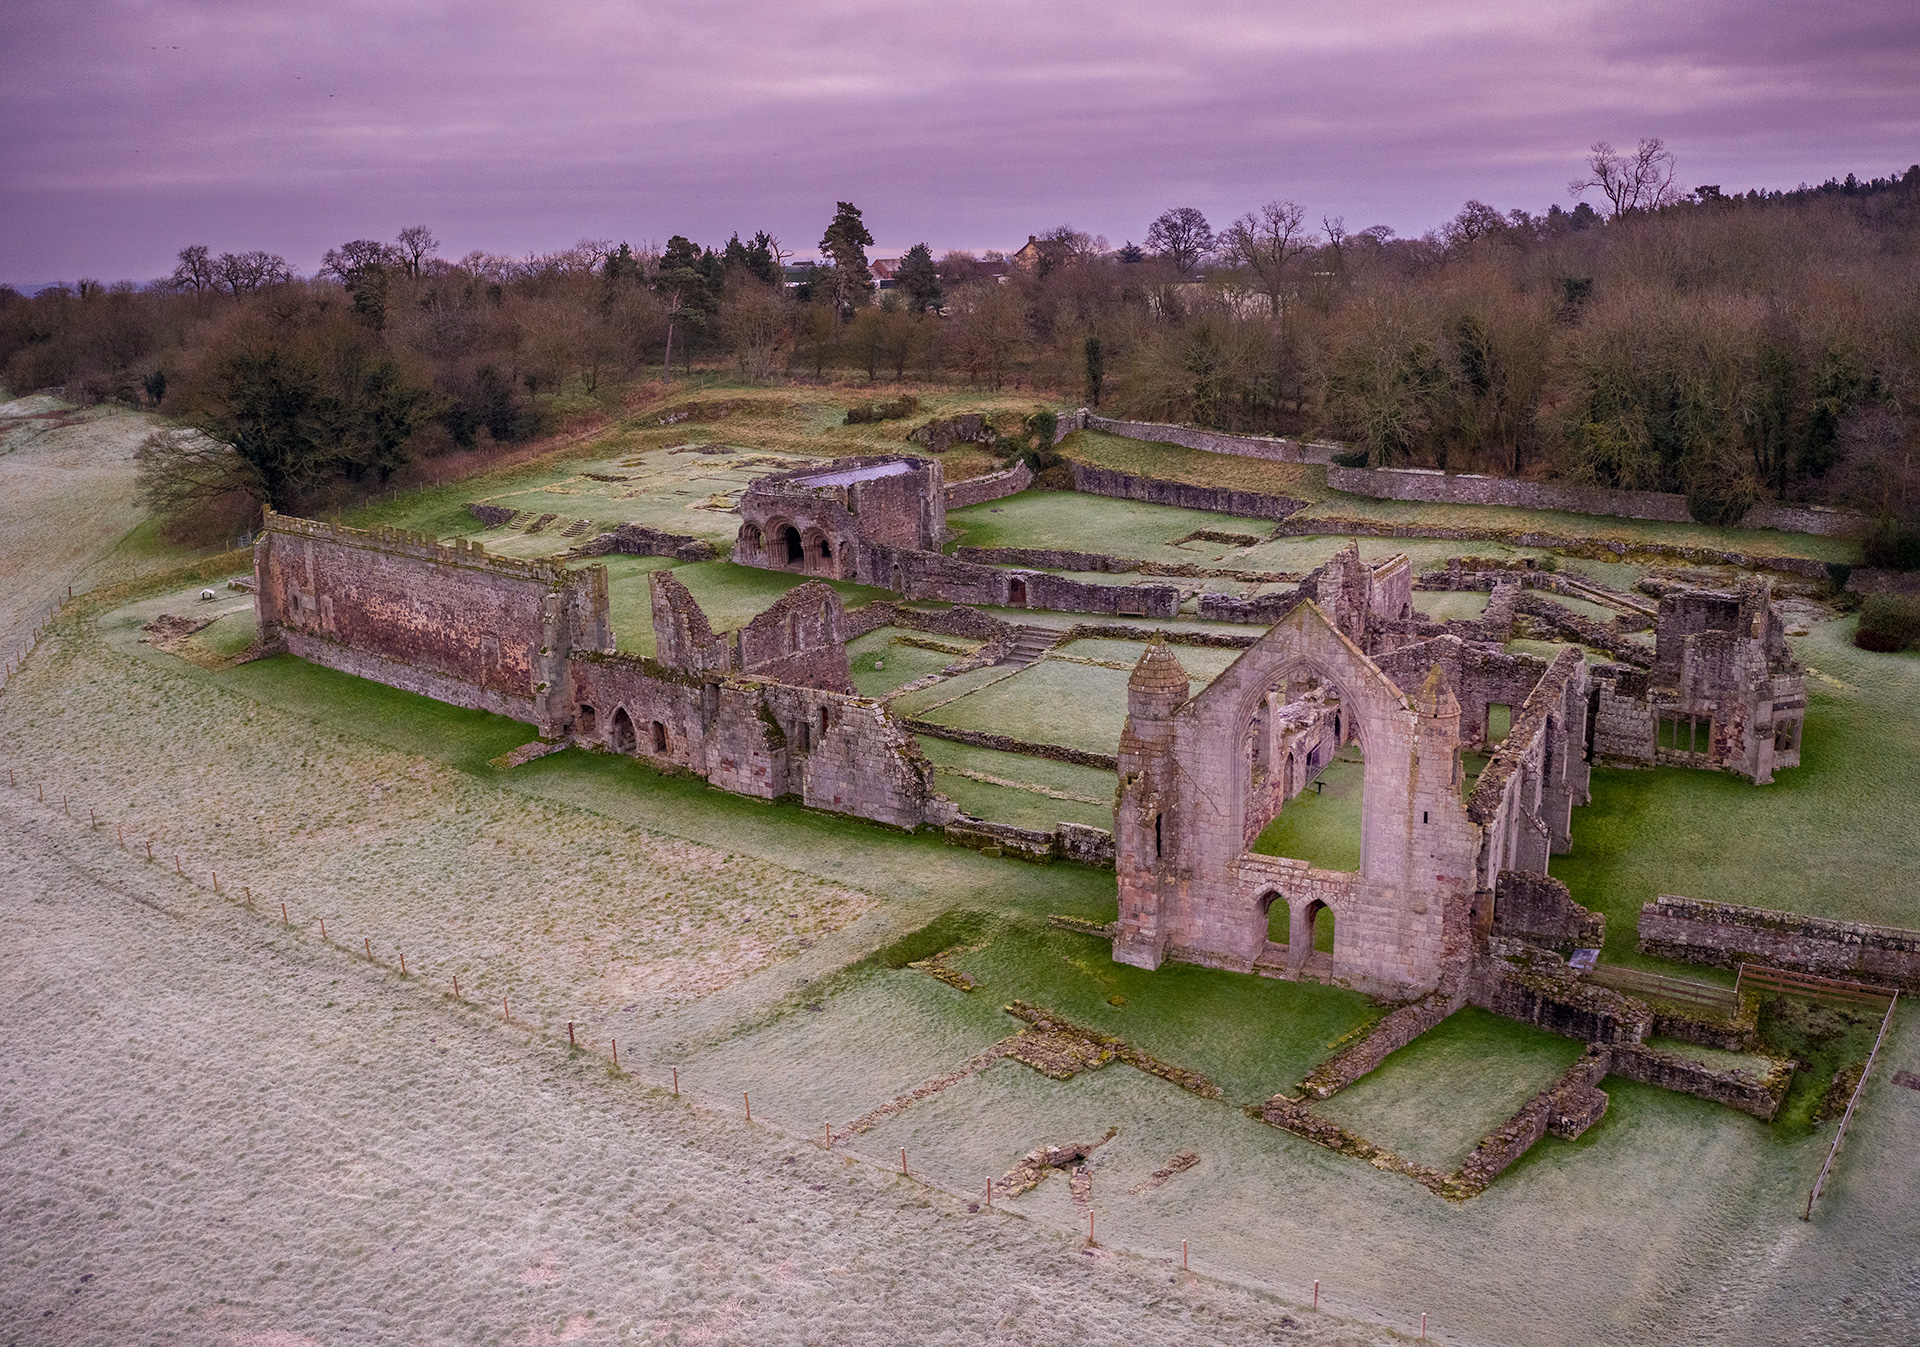 Haughmond Abbey from a drone